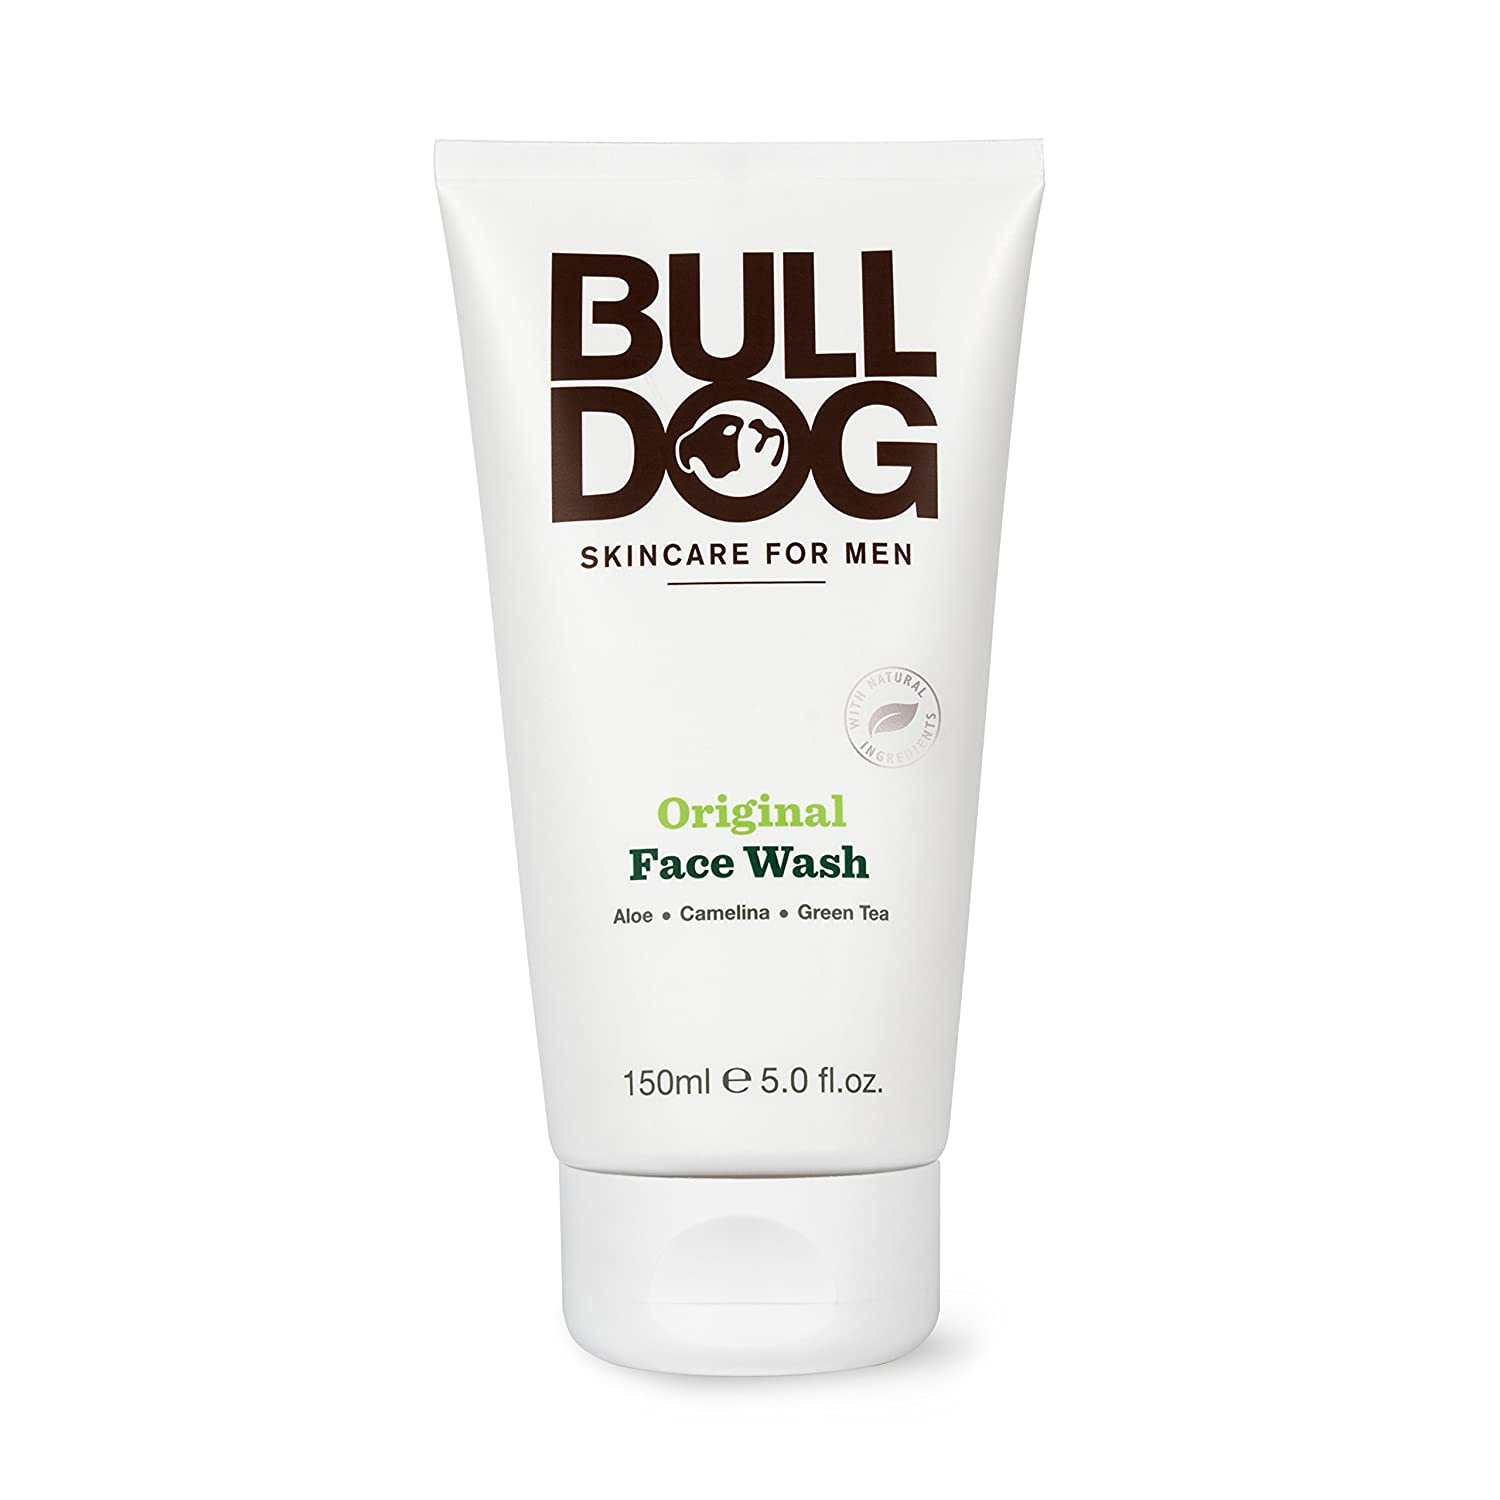 Bulldog originele Face Wash 150 ml (Pack of 2) BeautyCentre 3925617